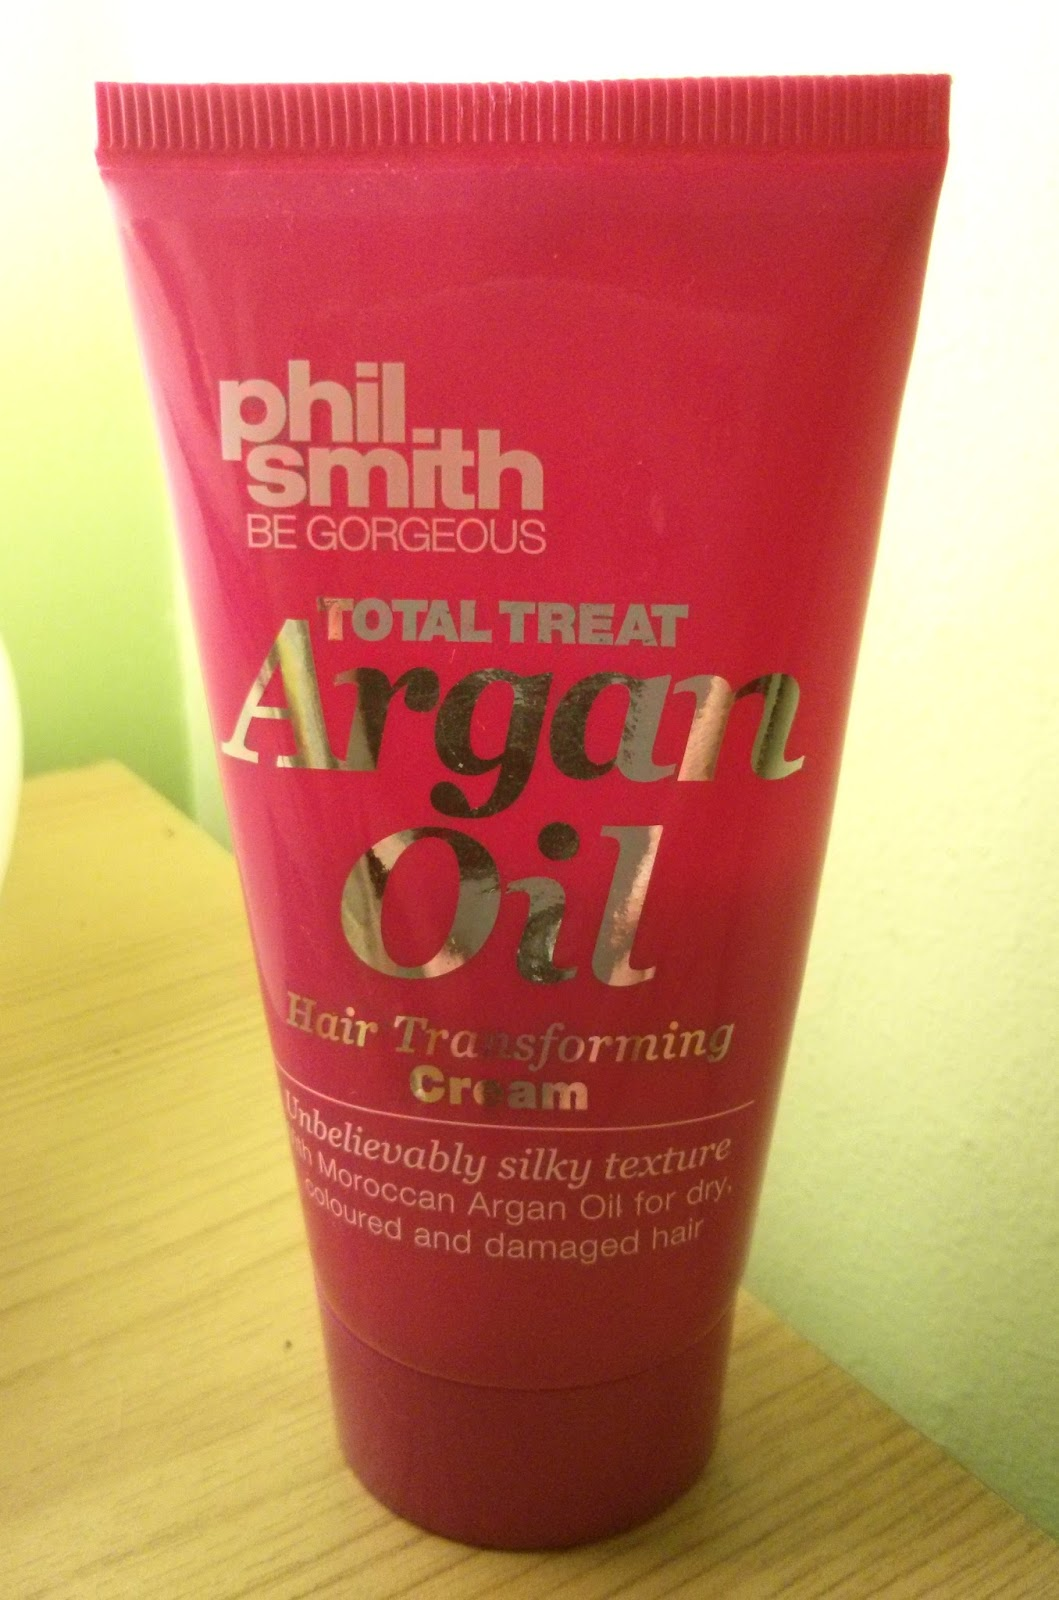 Total Treat Argan Oil, Phil Smith